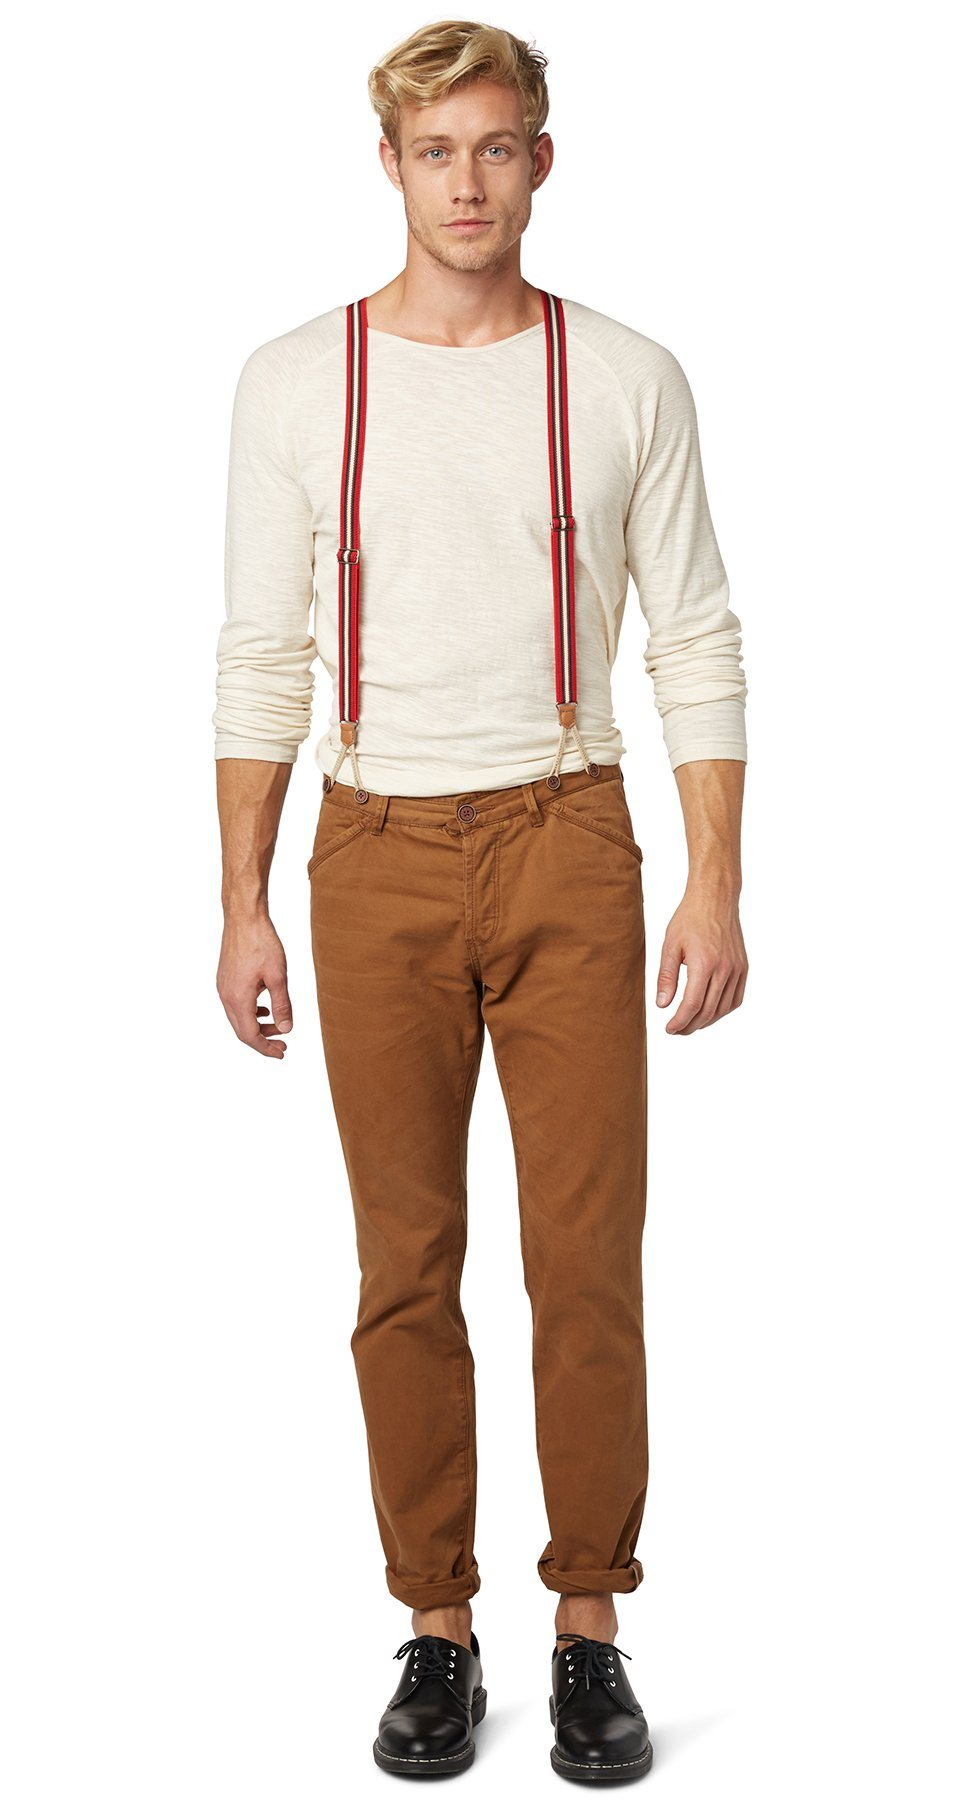 TOM TAILOR DENIM Hose »workwear chino with suspenders«